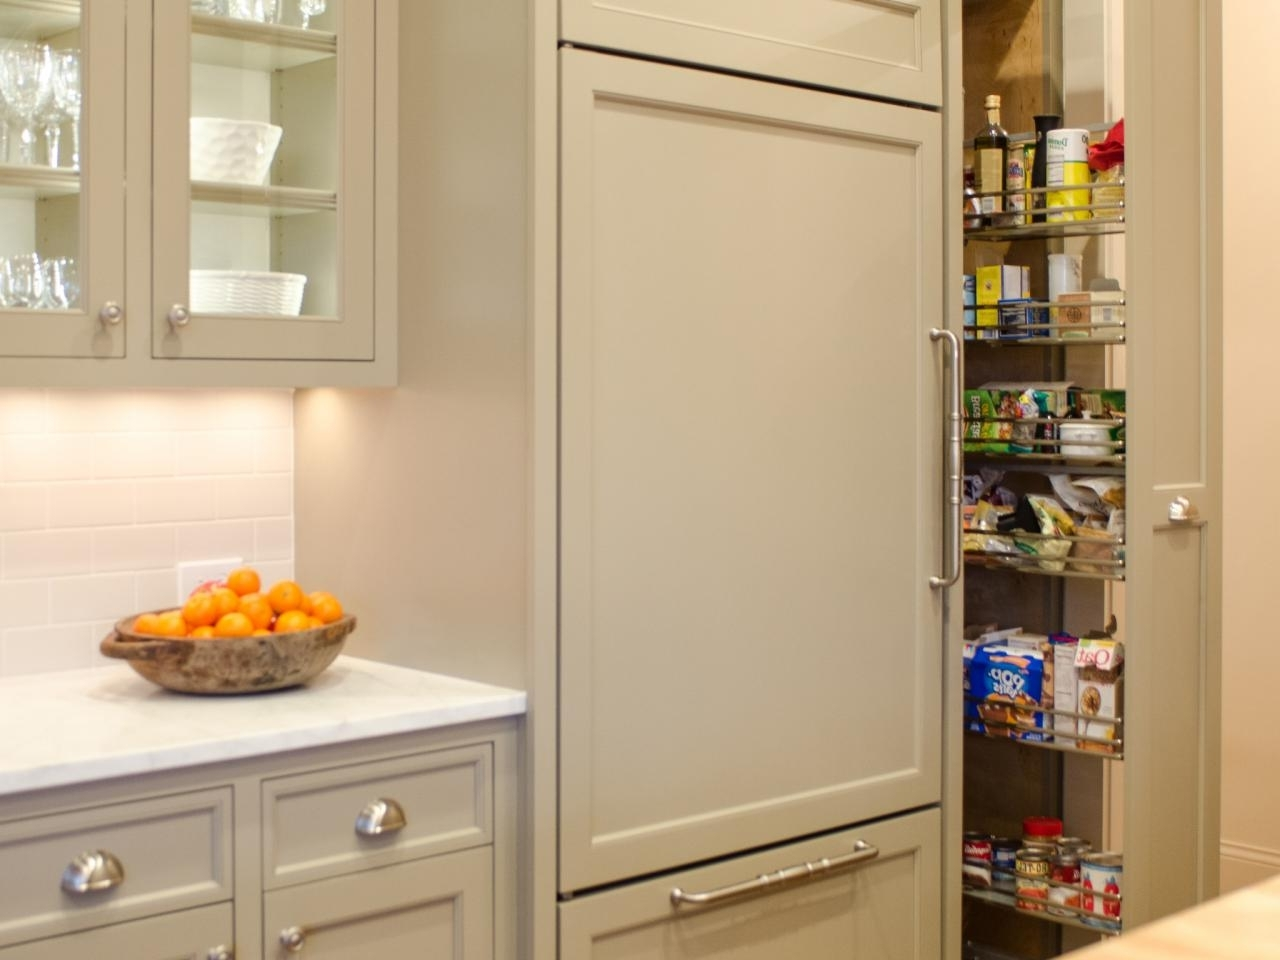 Pantry Cabinet Plans: Pictures, Options, Tips & Ideas | Hgtv Regarding Pantry Cabinets (Image 16 of 17)